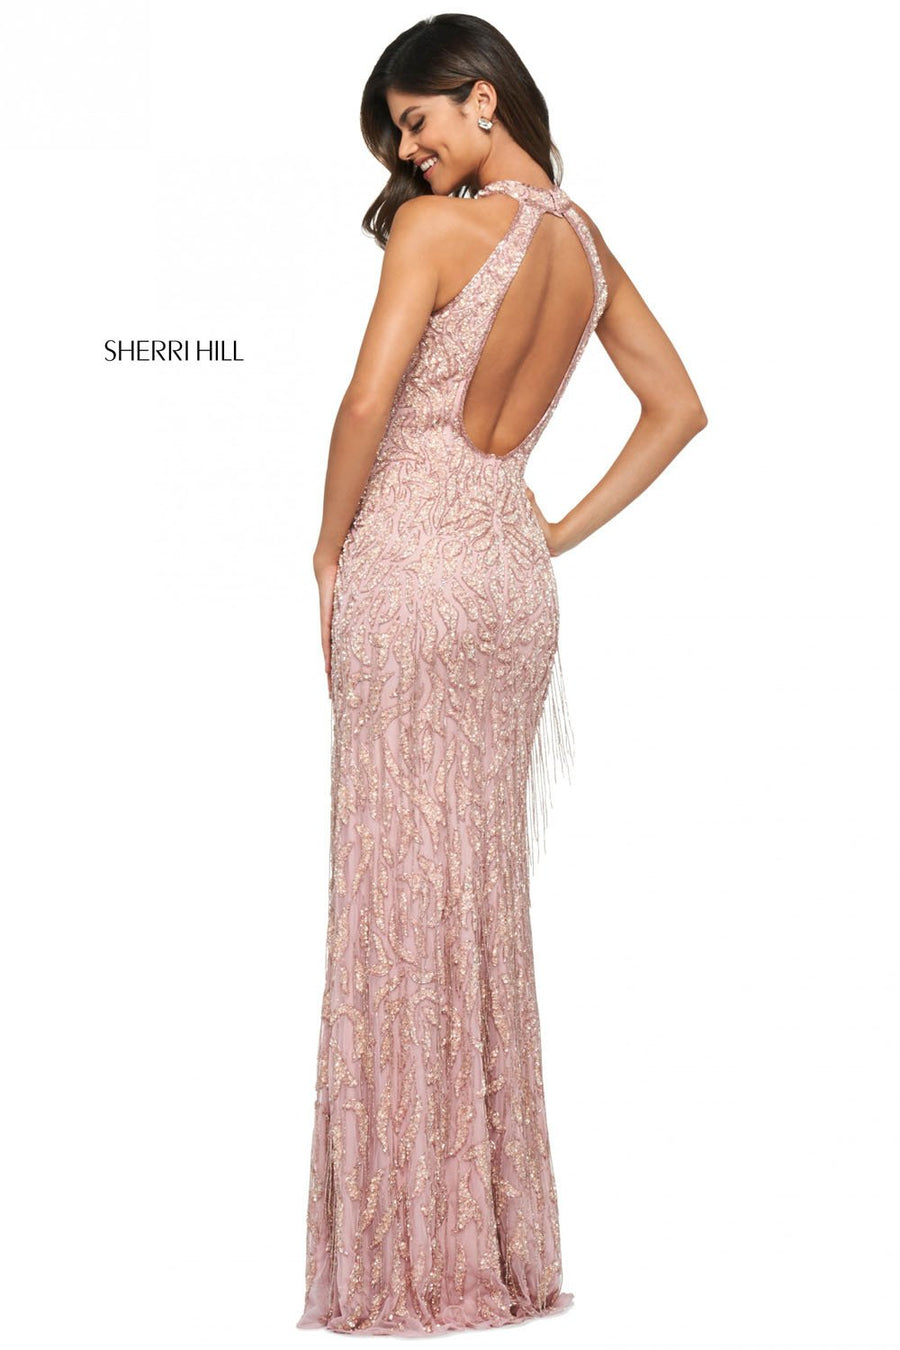 Sherri Hill 53882 prom dress images.  Sherri Hill 53882 is available in these colors: Light Pink, Burgundy, Black, Periwinkle.